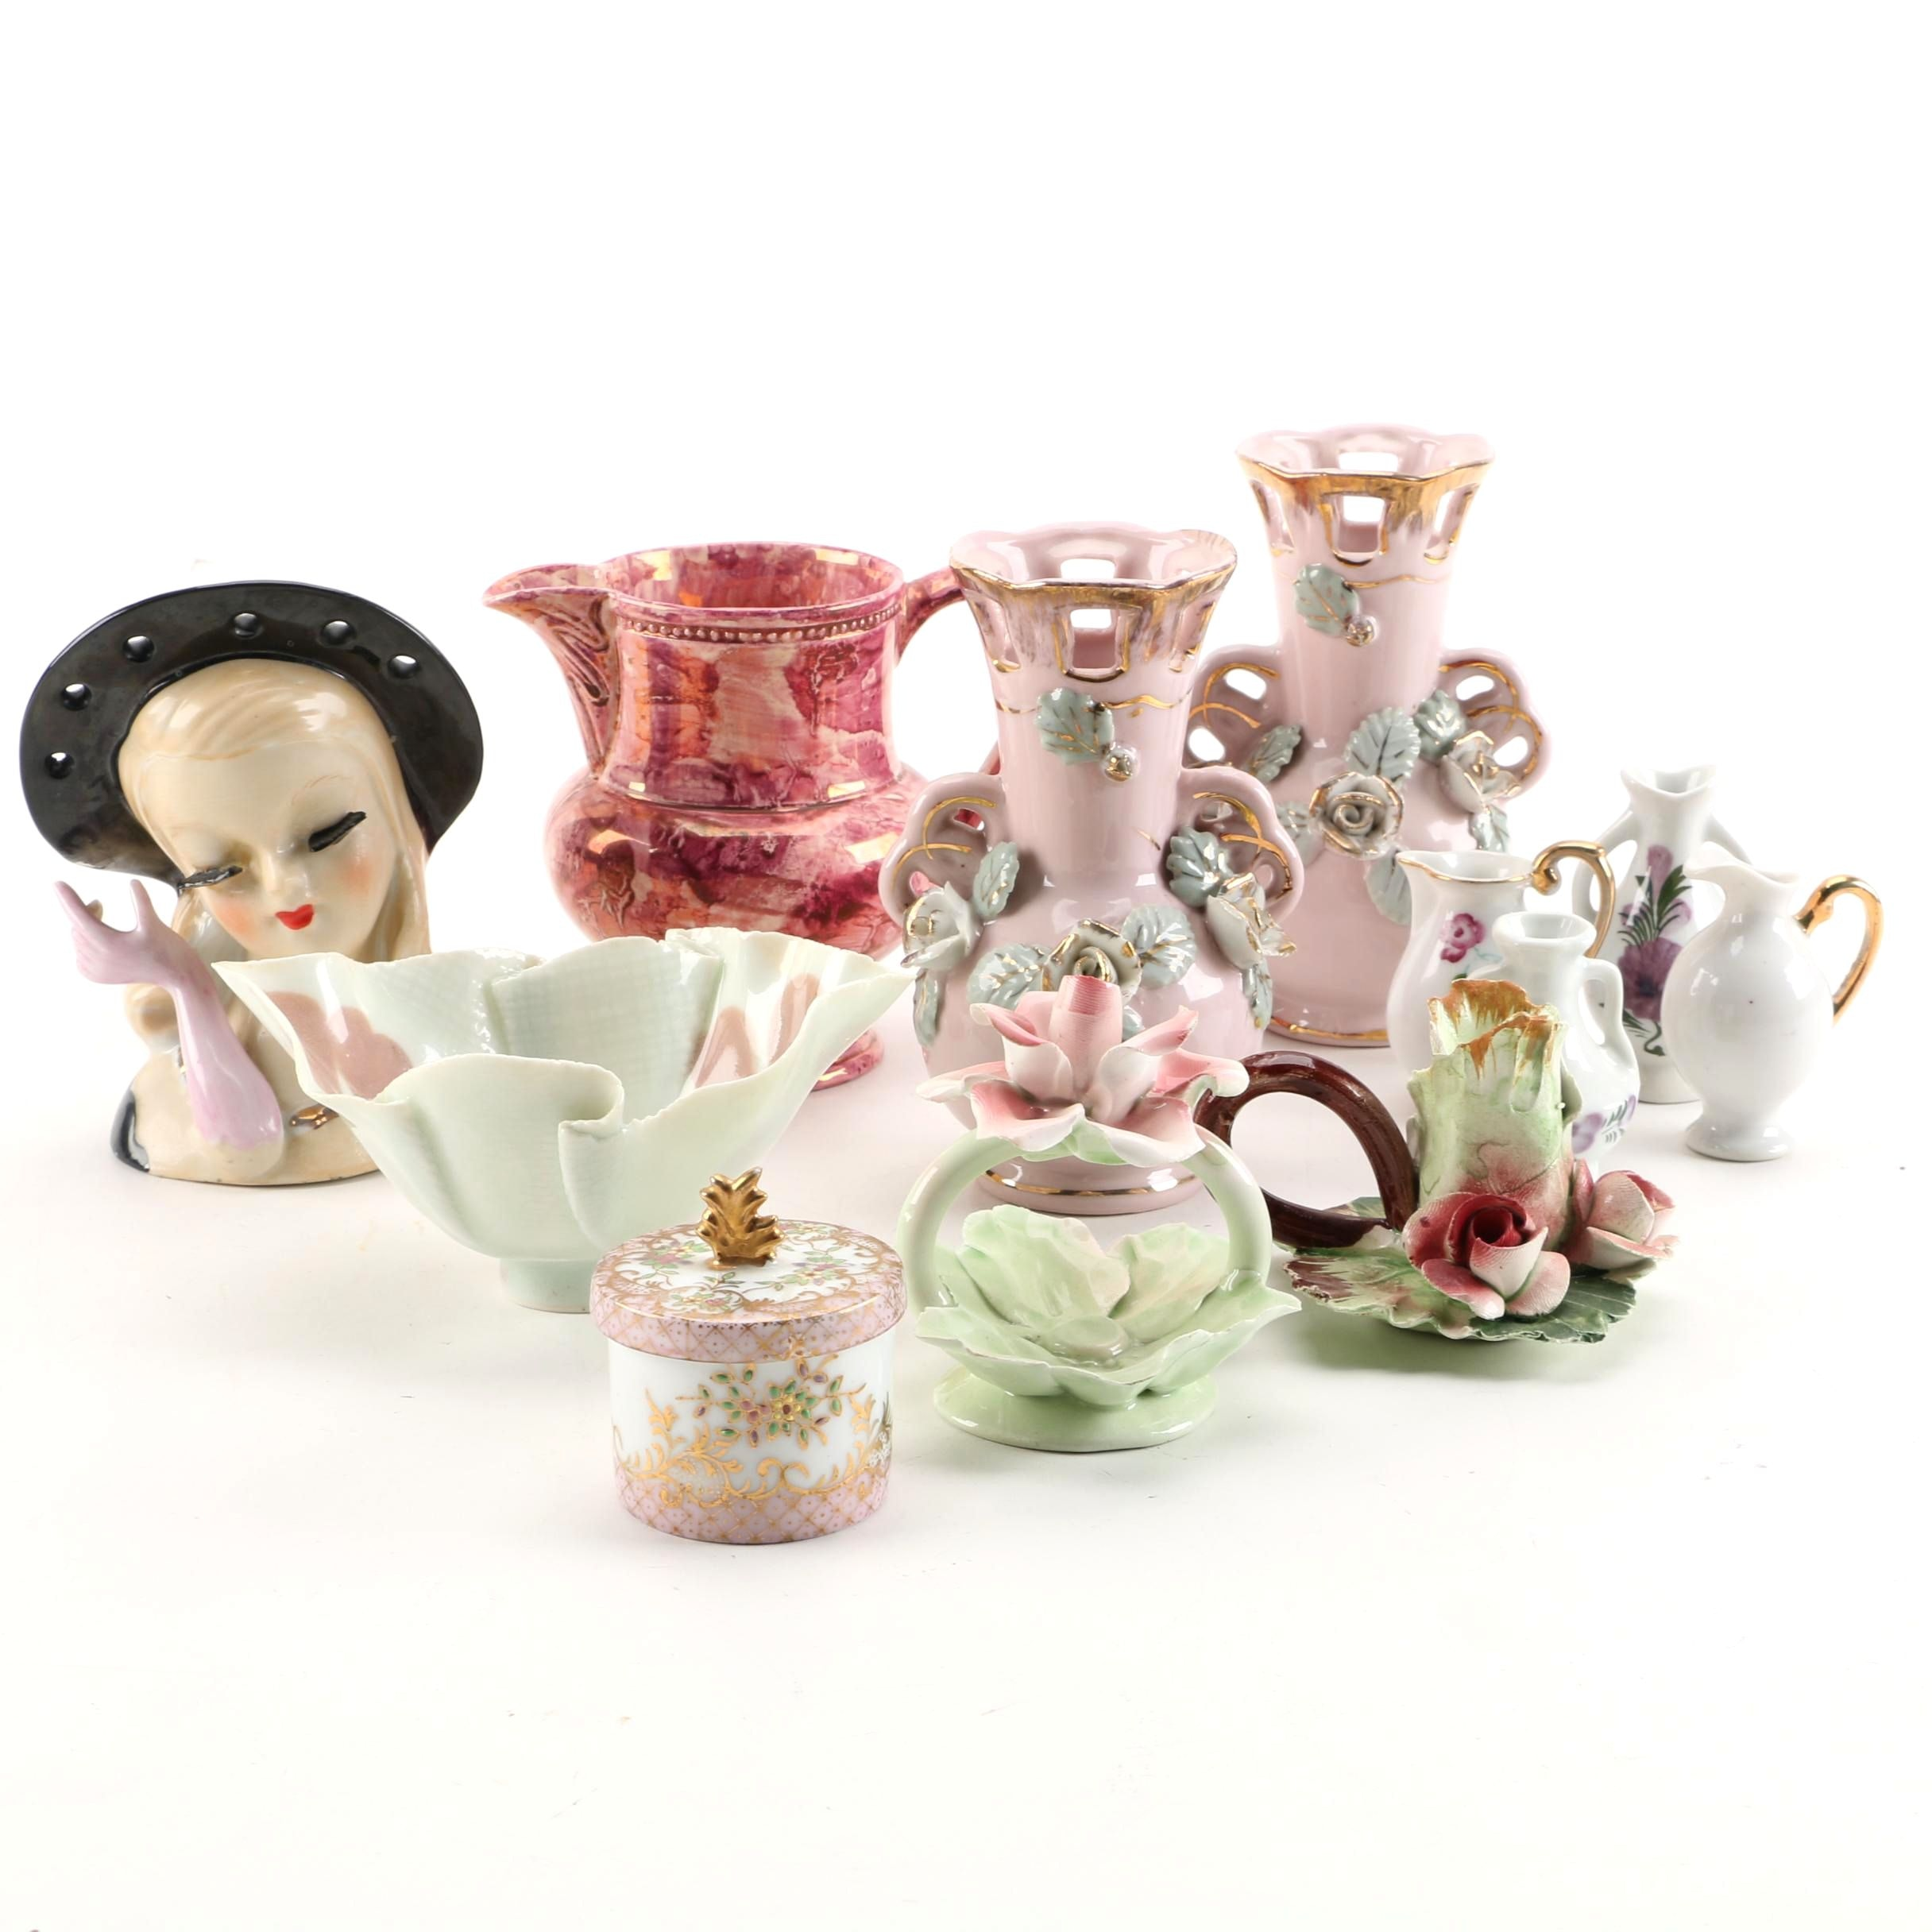 Palin Thorley Williamsburg Lustreware Creamer, Lady Head Vase, and Other Decor